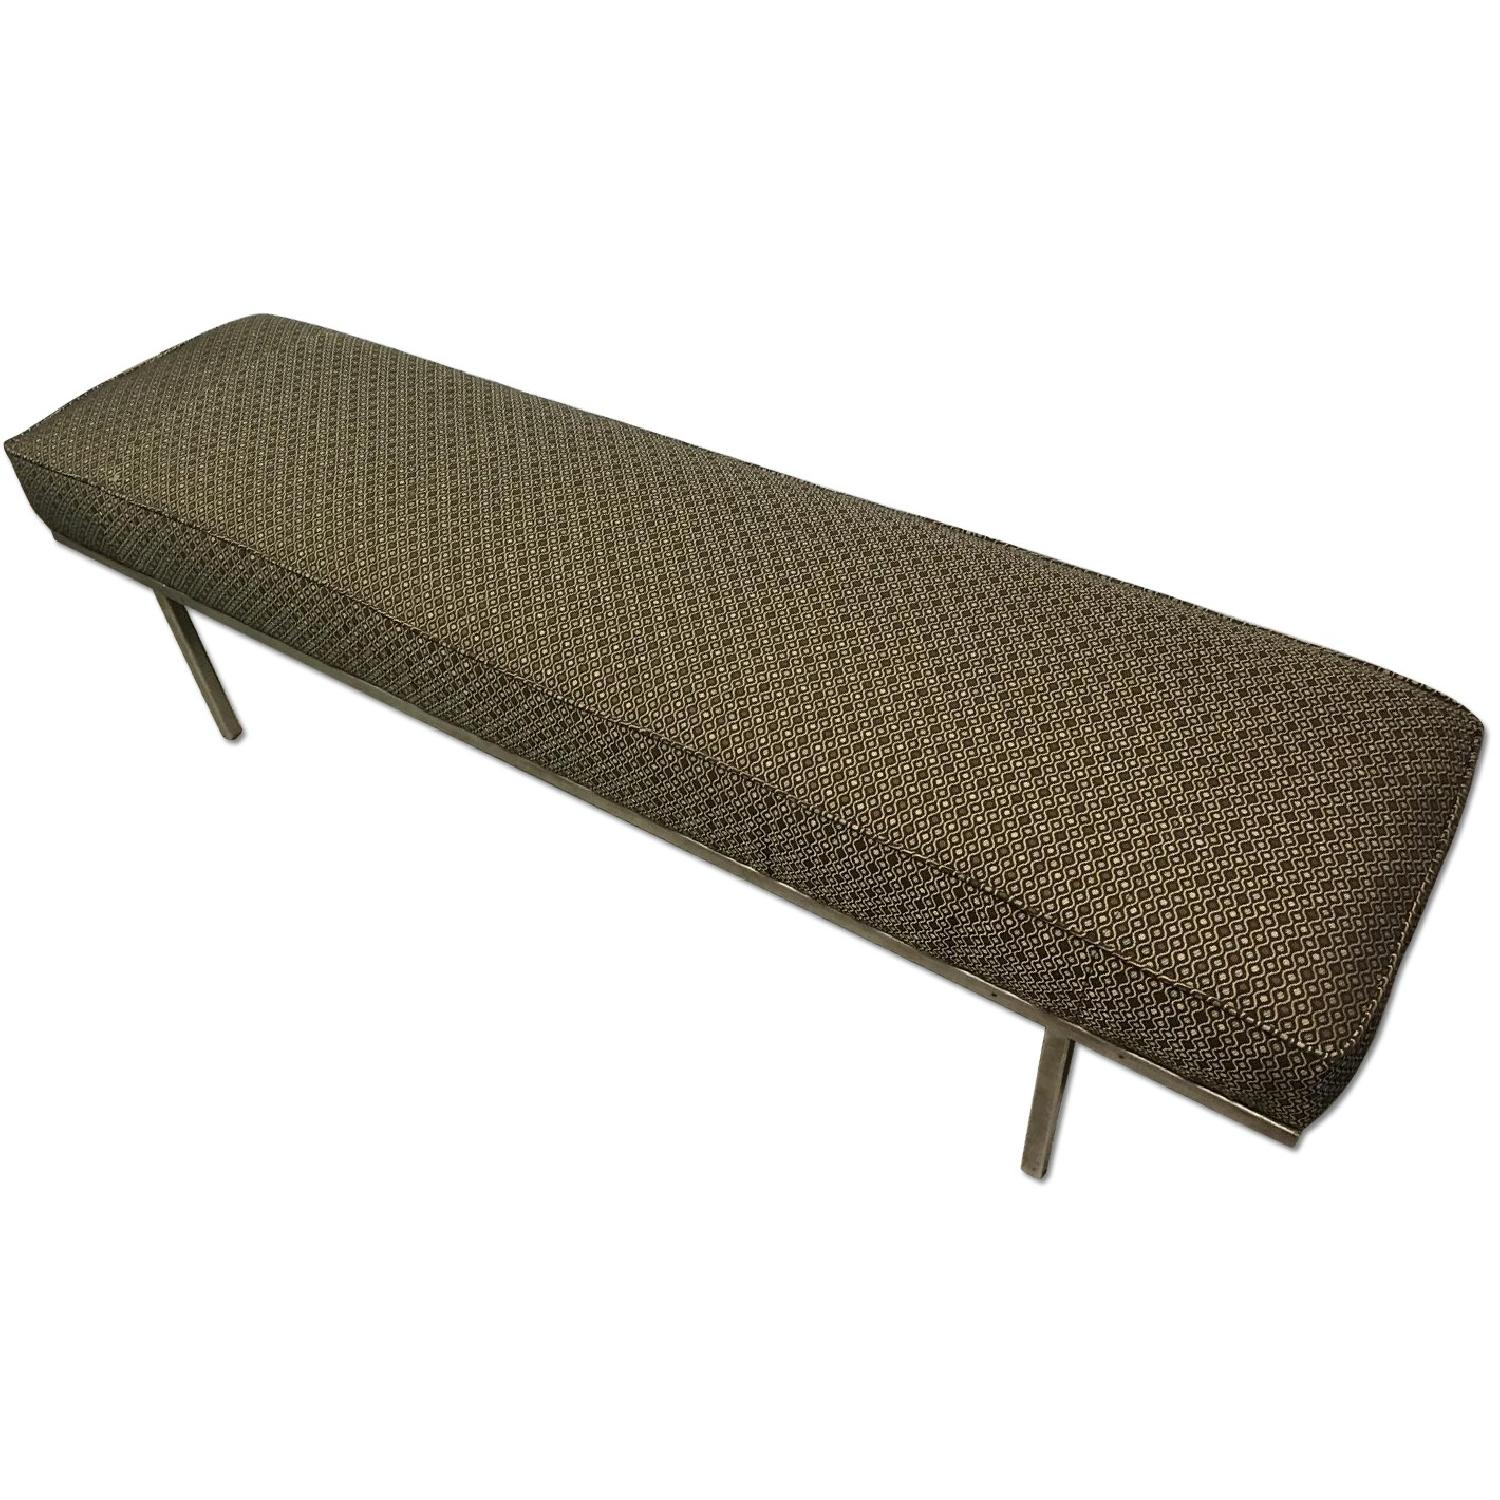 Knoll Style Mid Century Modern Chrome Bench - image-7